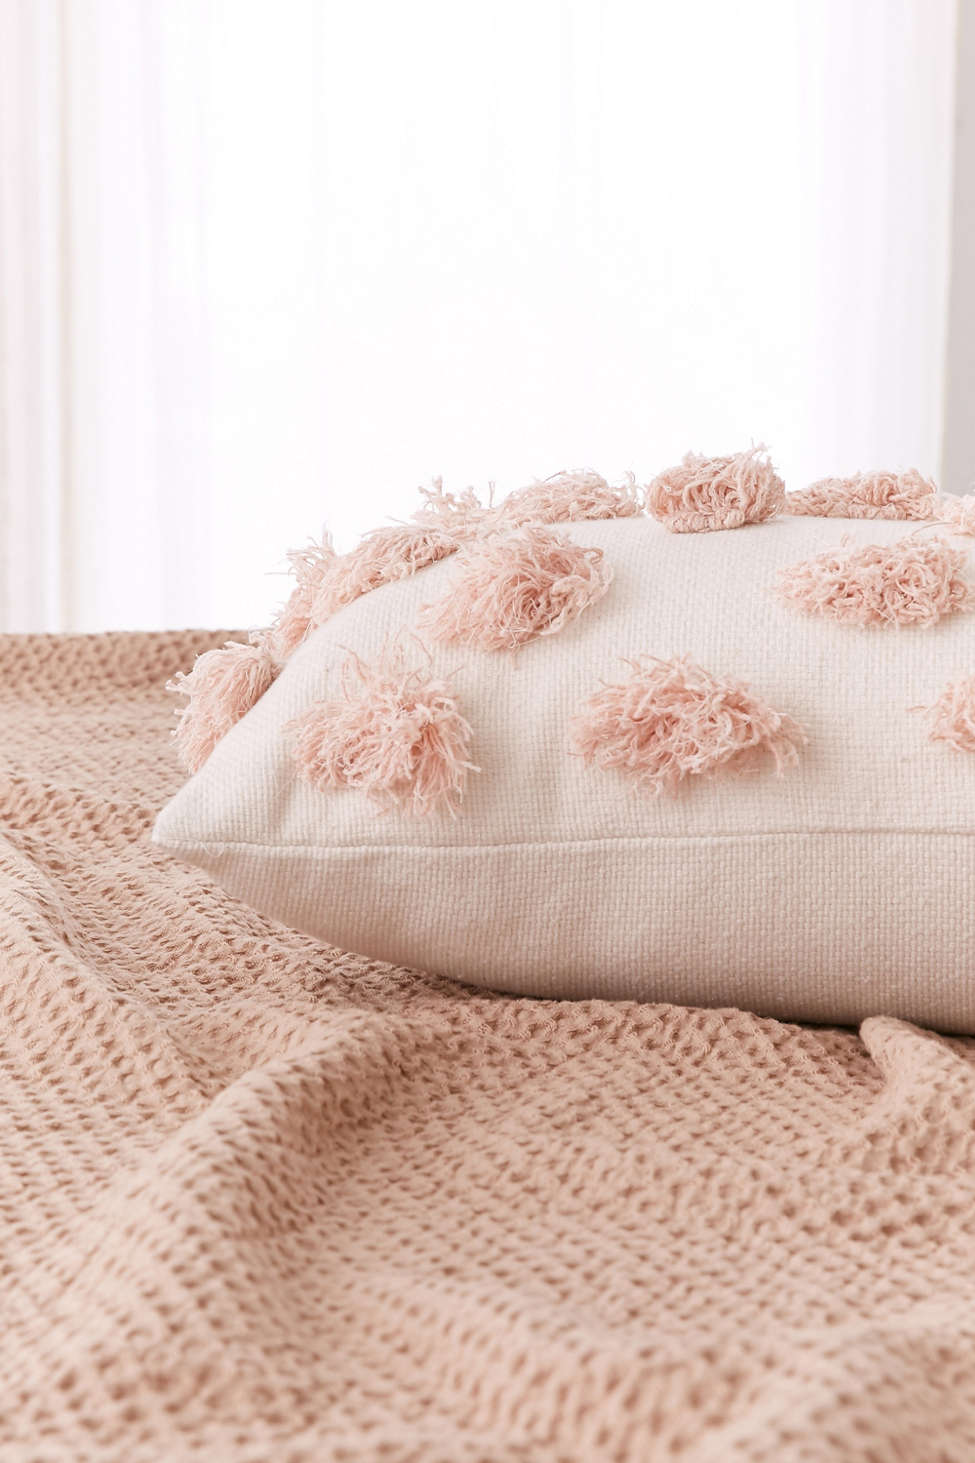 Slide View: 2: Diya Spotted Fringe Bolster Pillow